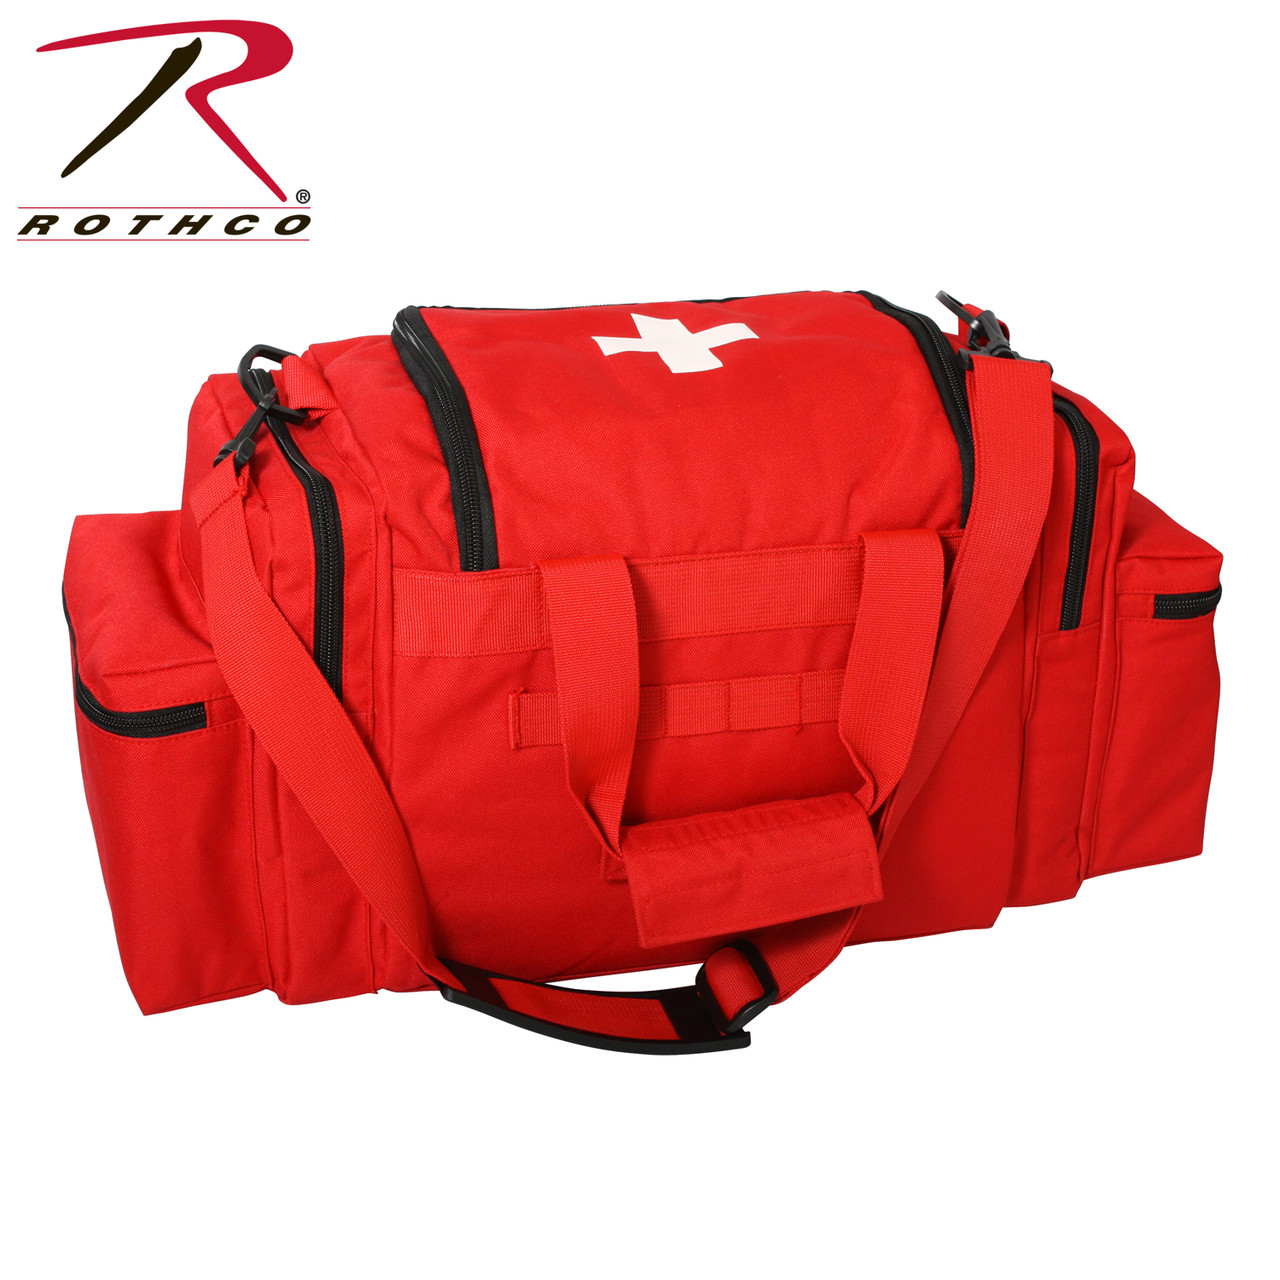 First Responder First Aid Kit Red | EMT First Aid Supplies